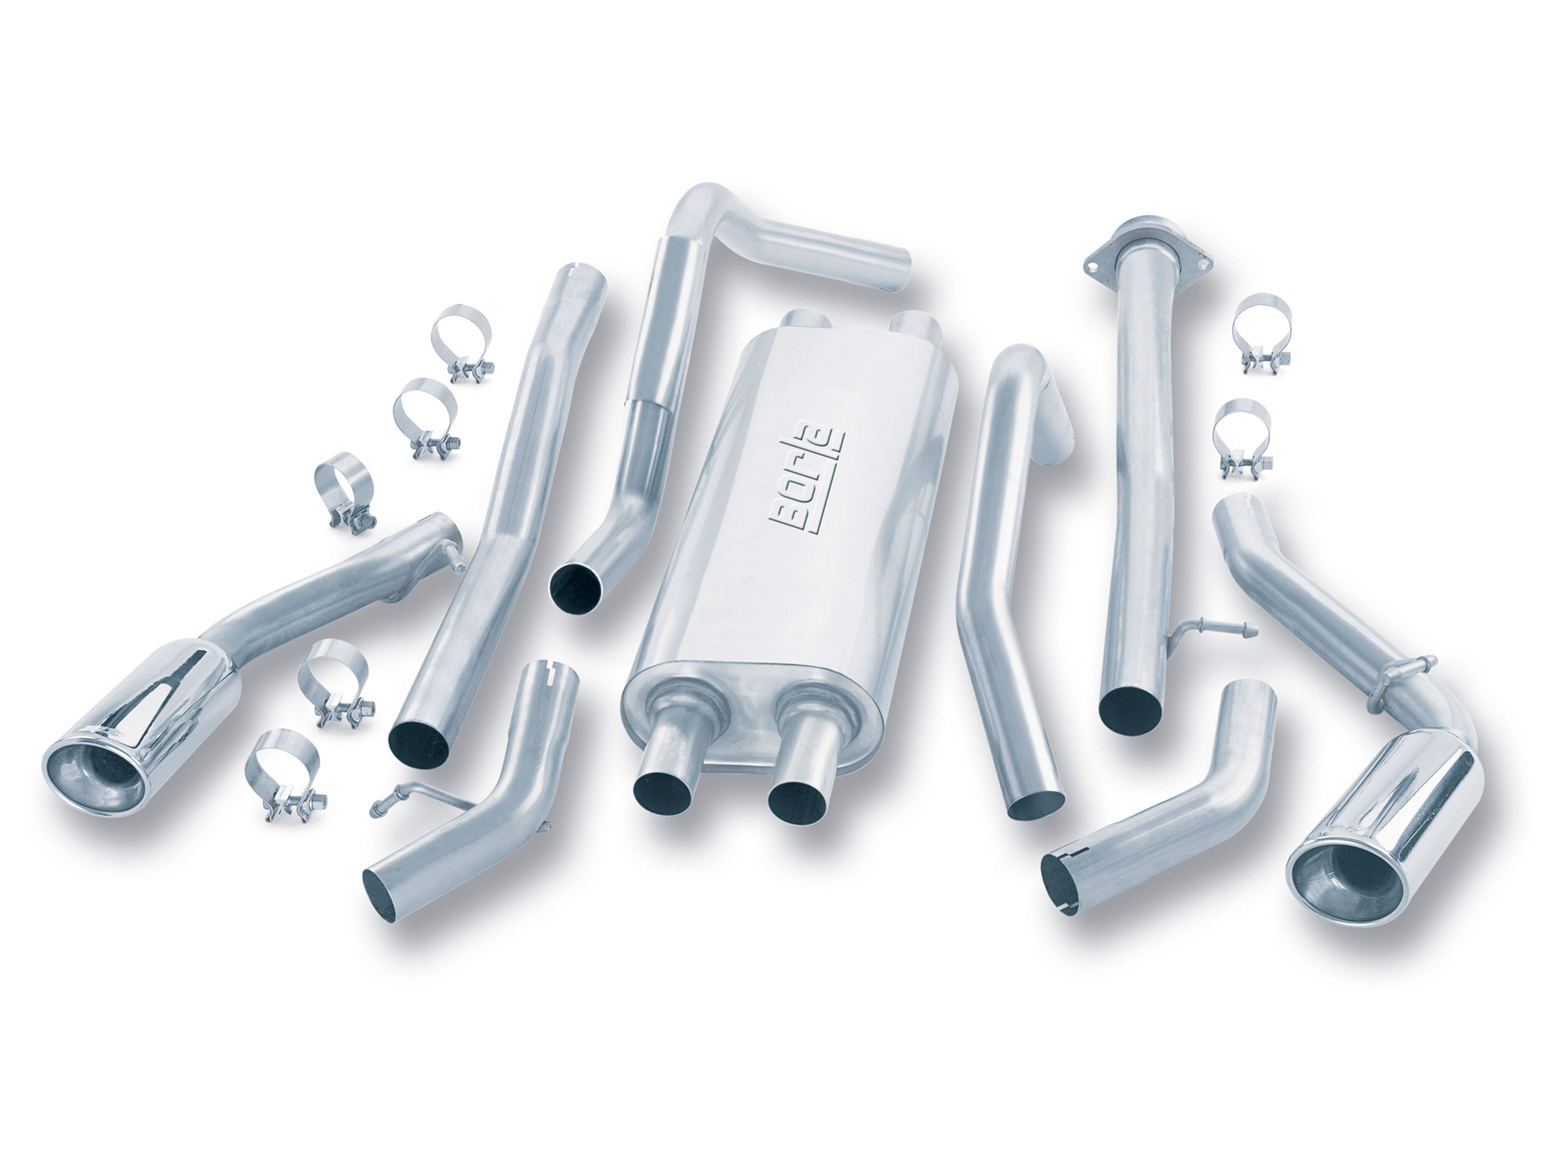 "Cadillac Escalade  Esv 6.0l 2003-2006 Borla 2.5"", 2.25"" Cat-Back Exhaust System - Single Round Rolled Angle-Cut Lined Resonated"